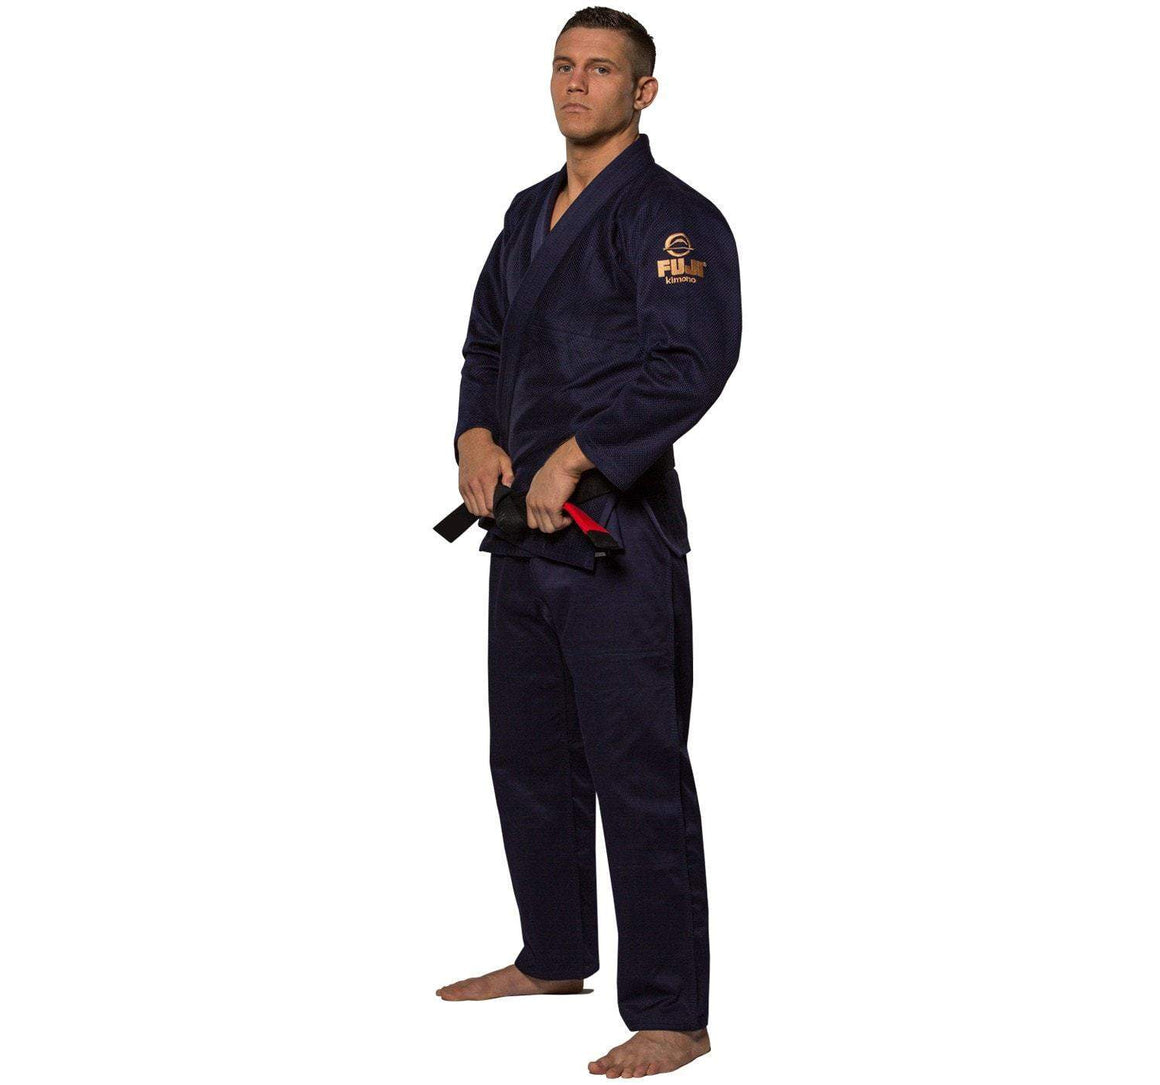 Fuji All Around BJJ Gi - Navy